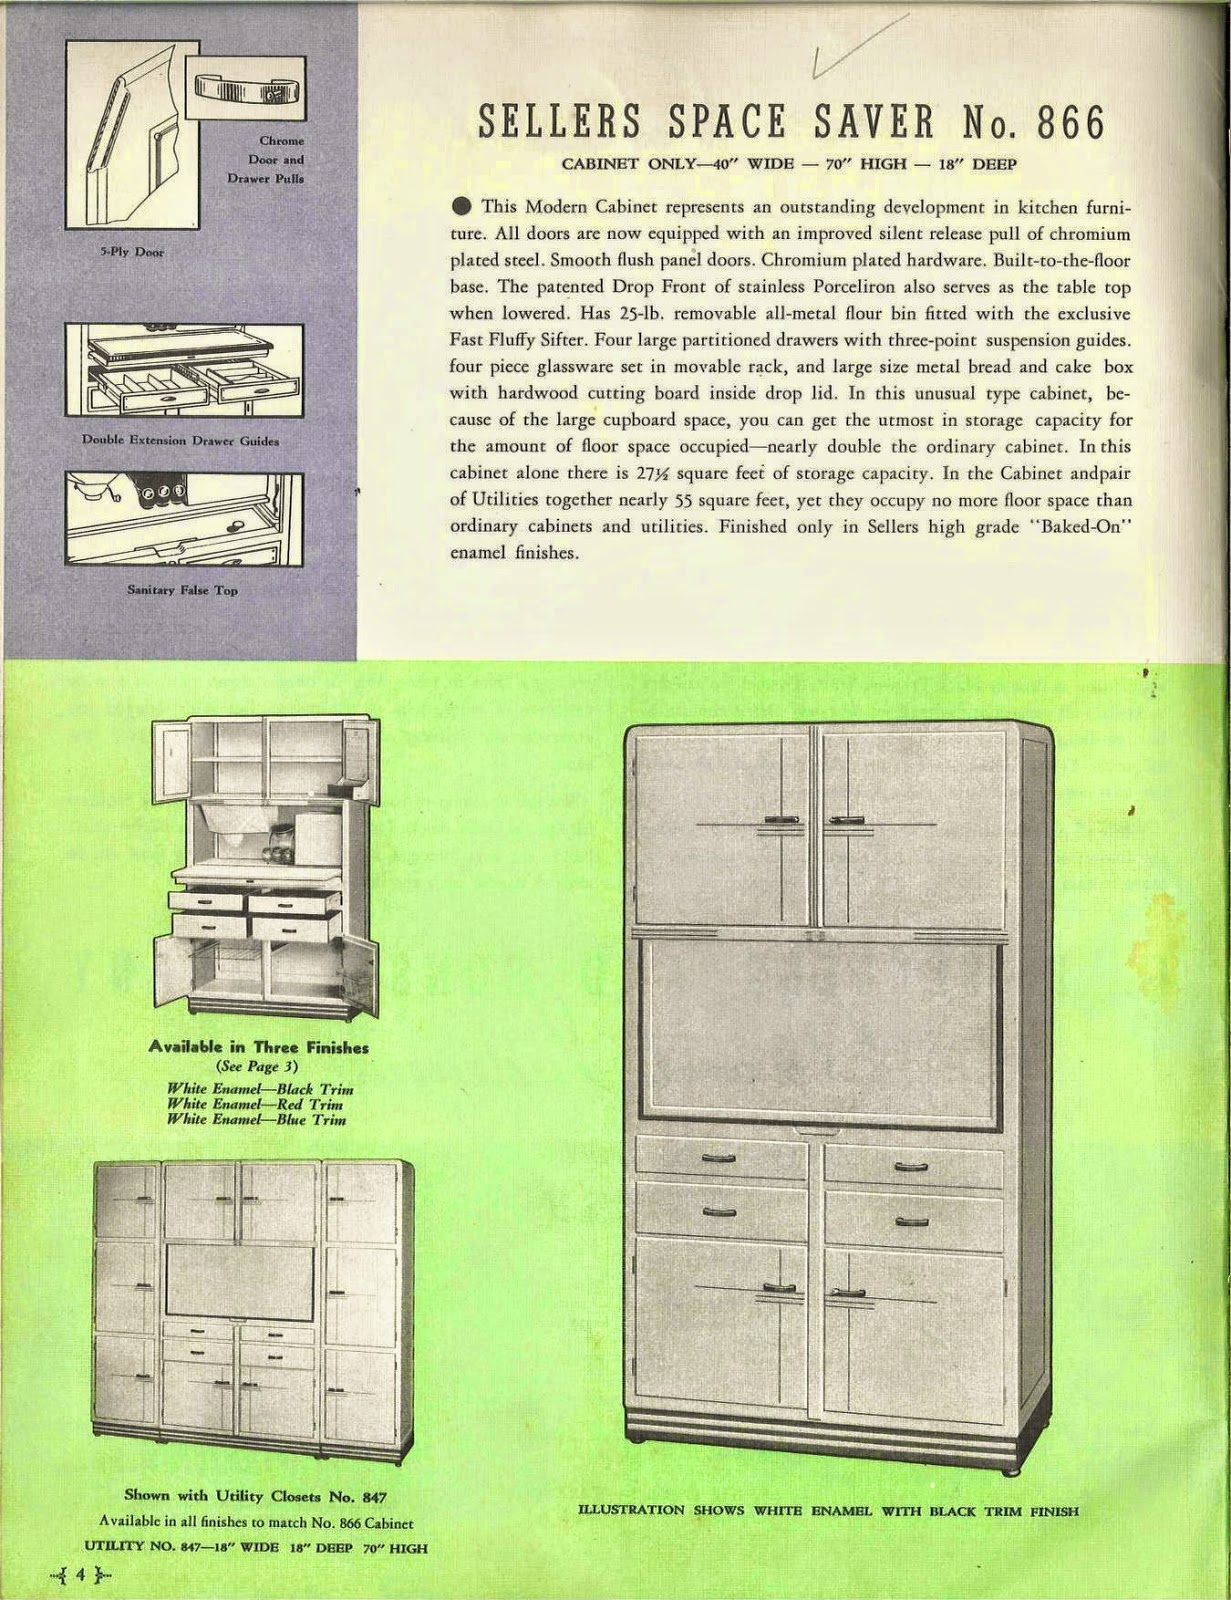 Sellers Kitchen Cabinet Sellers Kitchen Furniture For 1939 Art Deco And Art Moderne